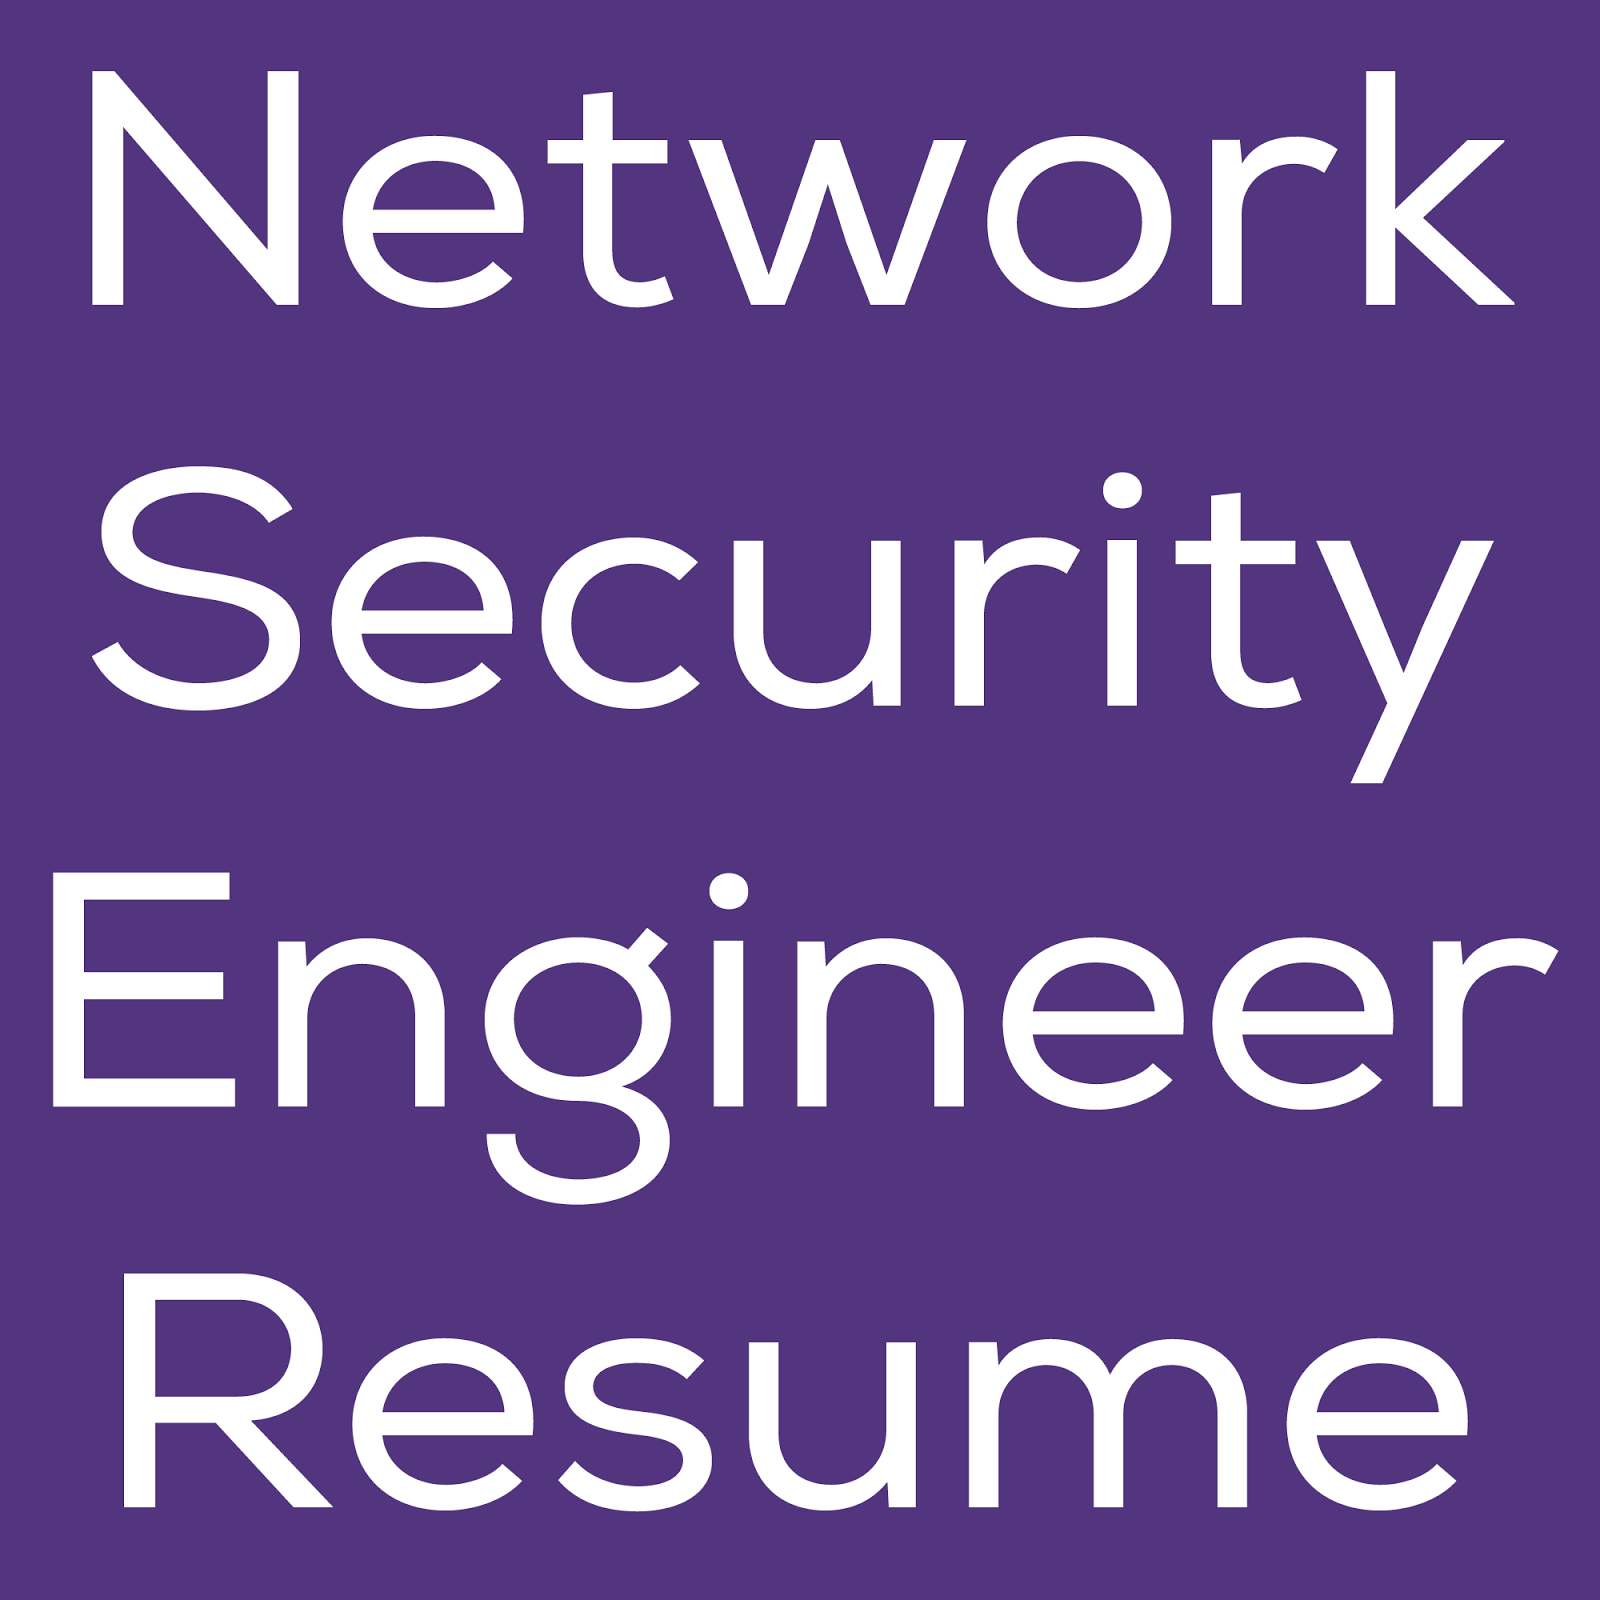 Surveillance Engineer Resume Network Security Engineer Resume Engineersdaily Free